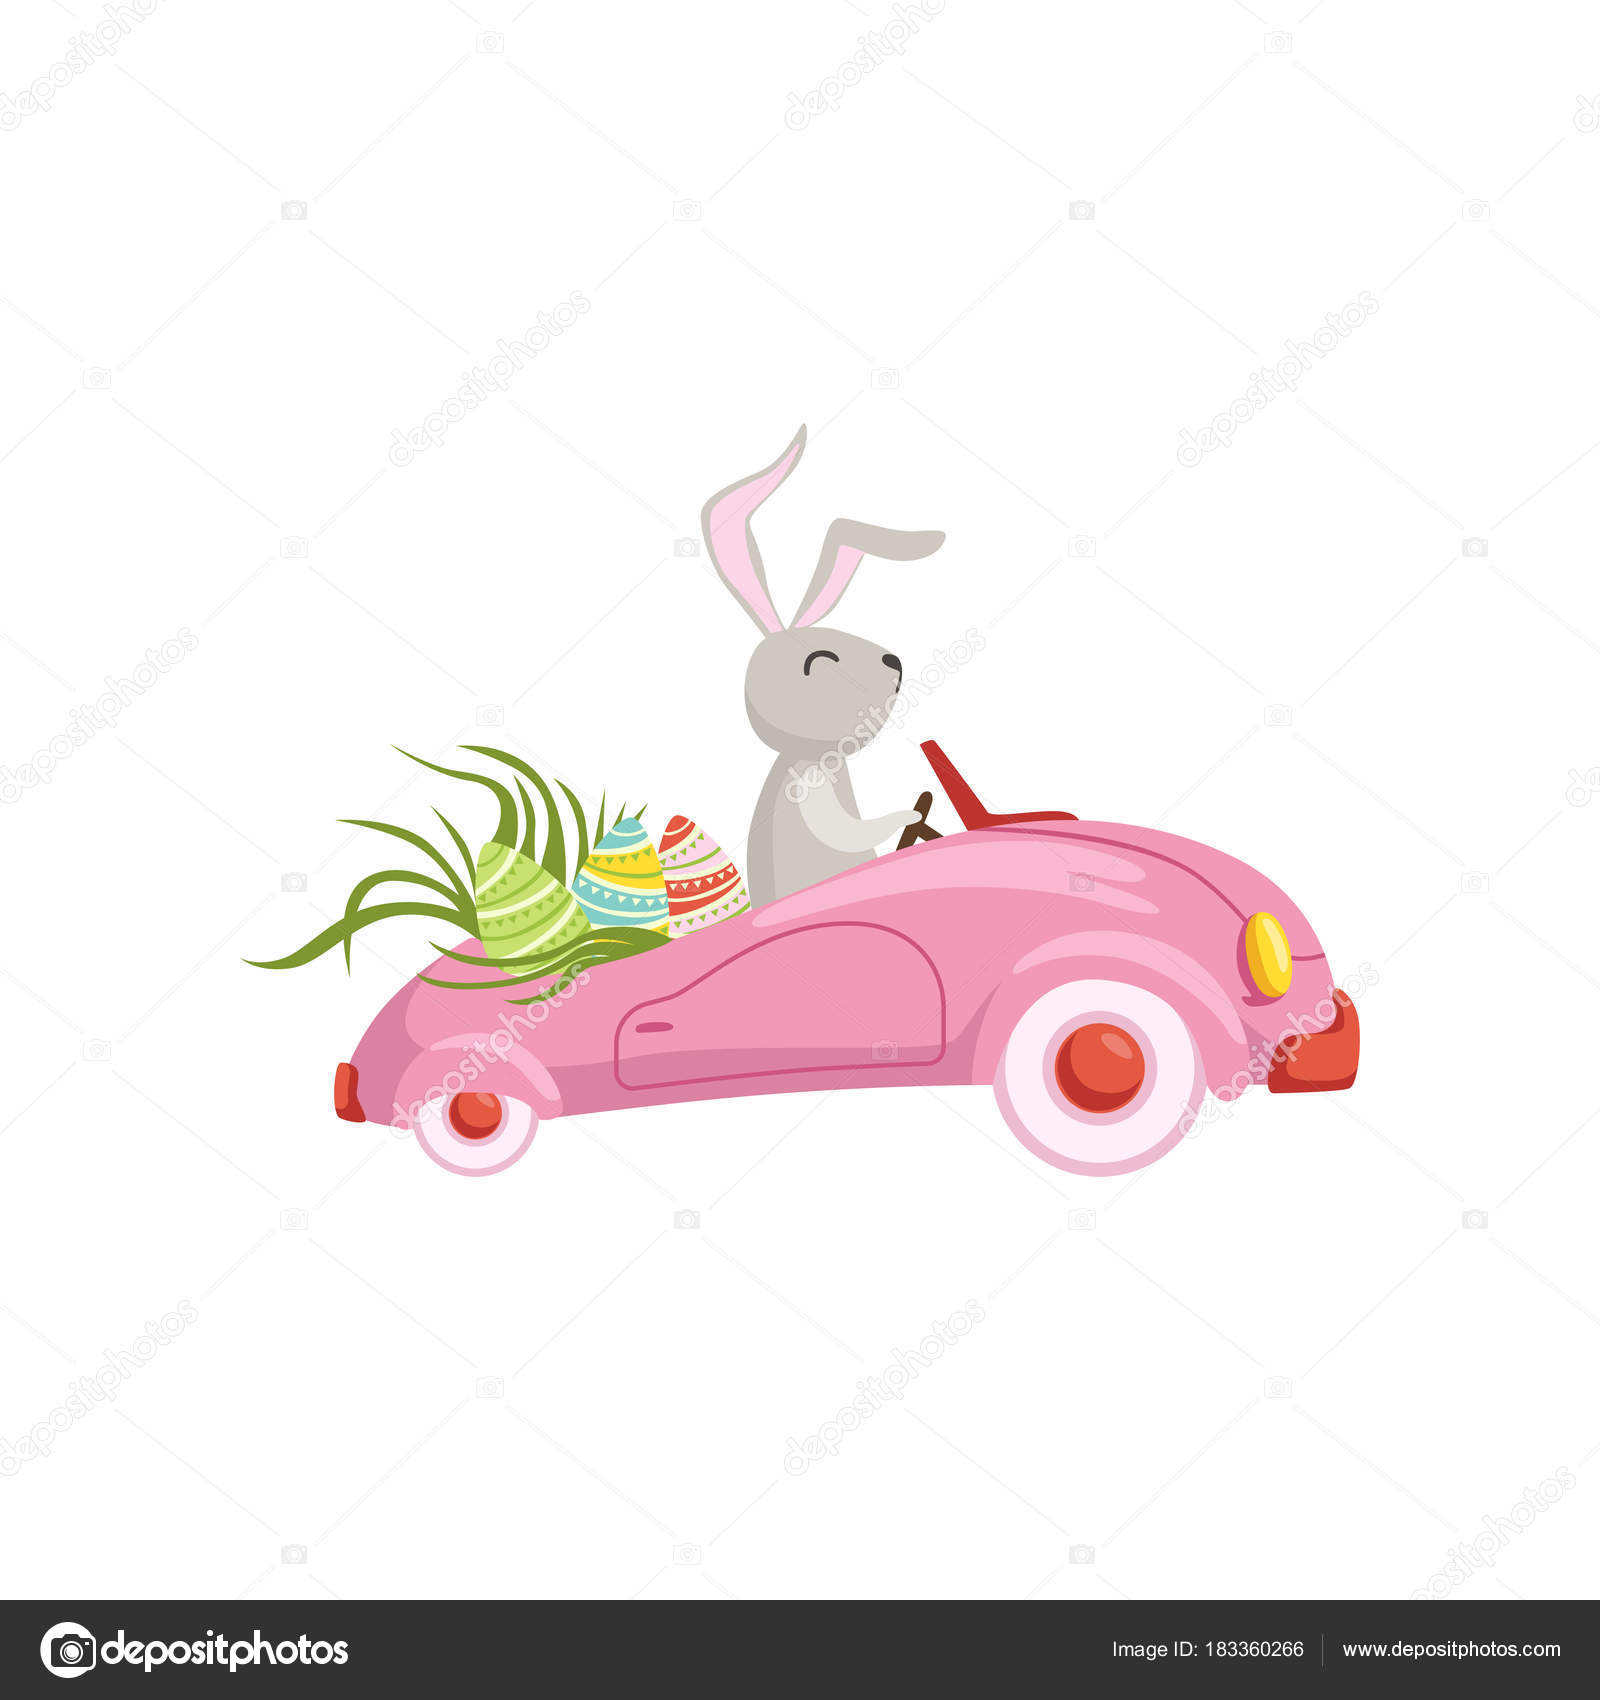 Easter Bunny Reese S Egg Cars: Cute Bunny Driving Pink Vintage Car Decorated With Easter